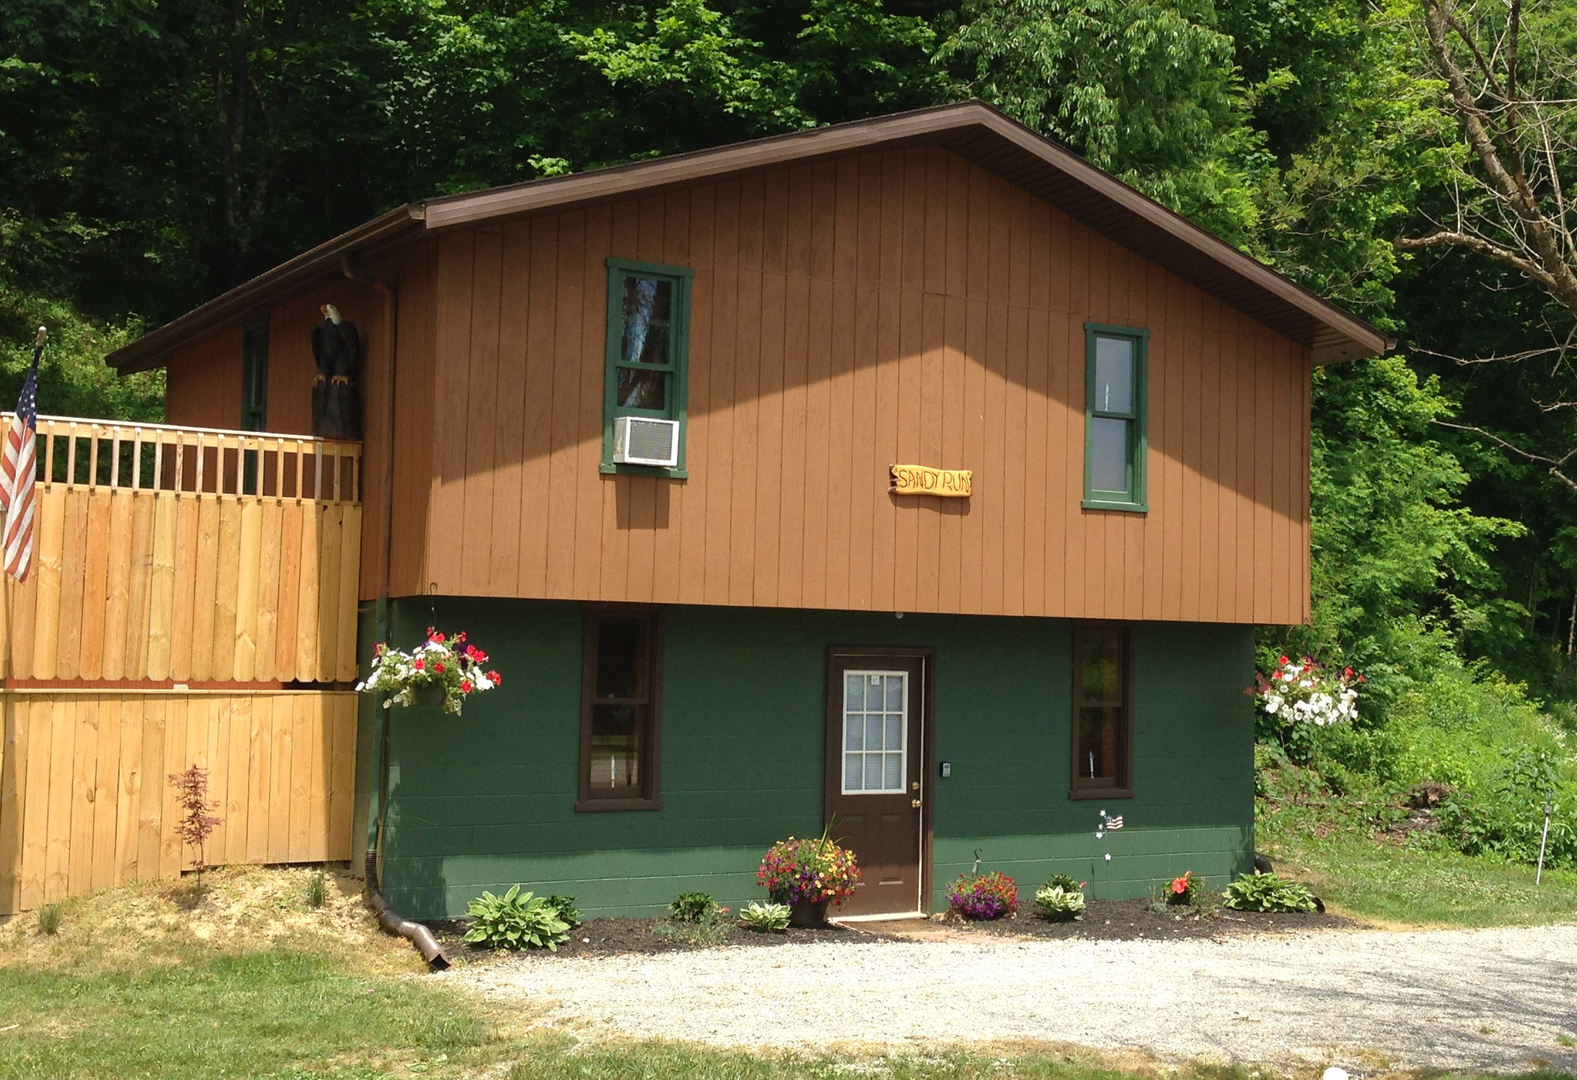 ohio coshocton amenities in new cabin near features log millersburg pictures rentals amp cheap lodge cabins crest of rental